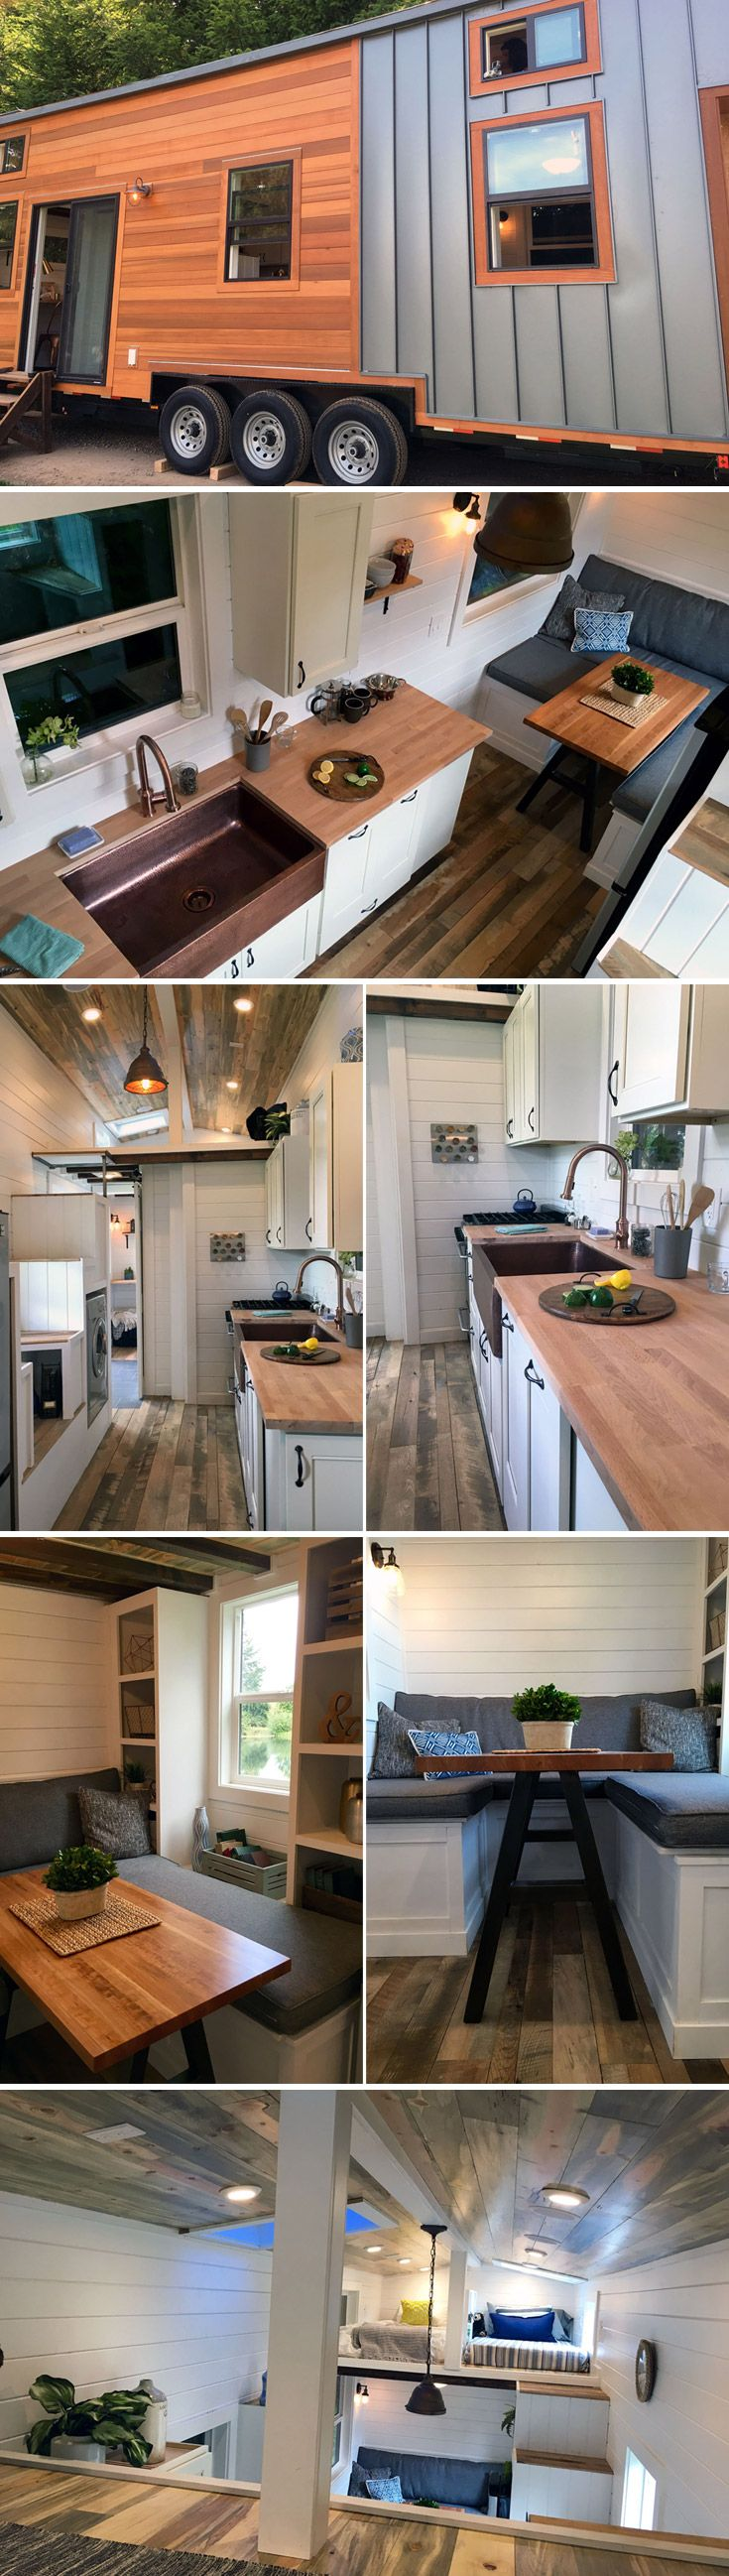 1105 best Tiny House images on Pinterest Architecture Small